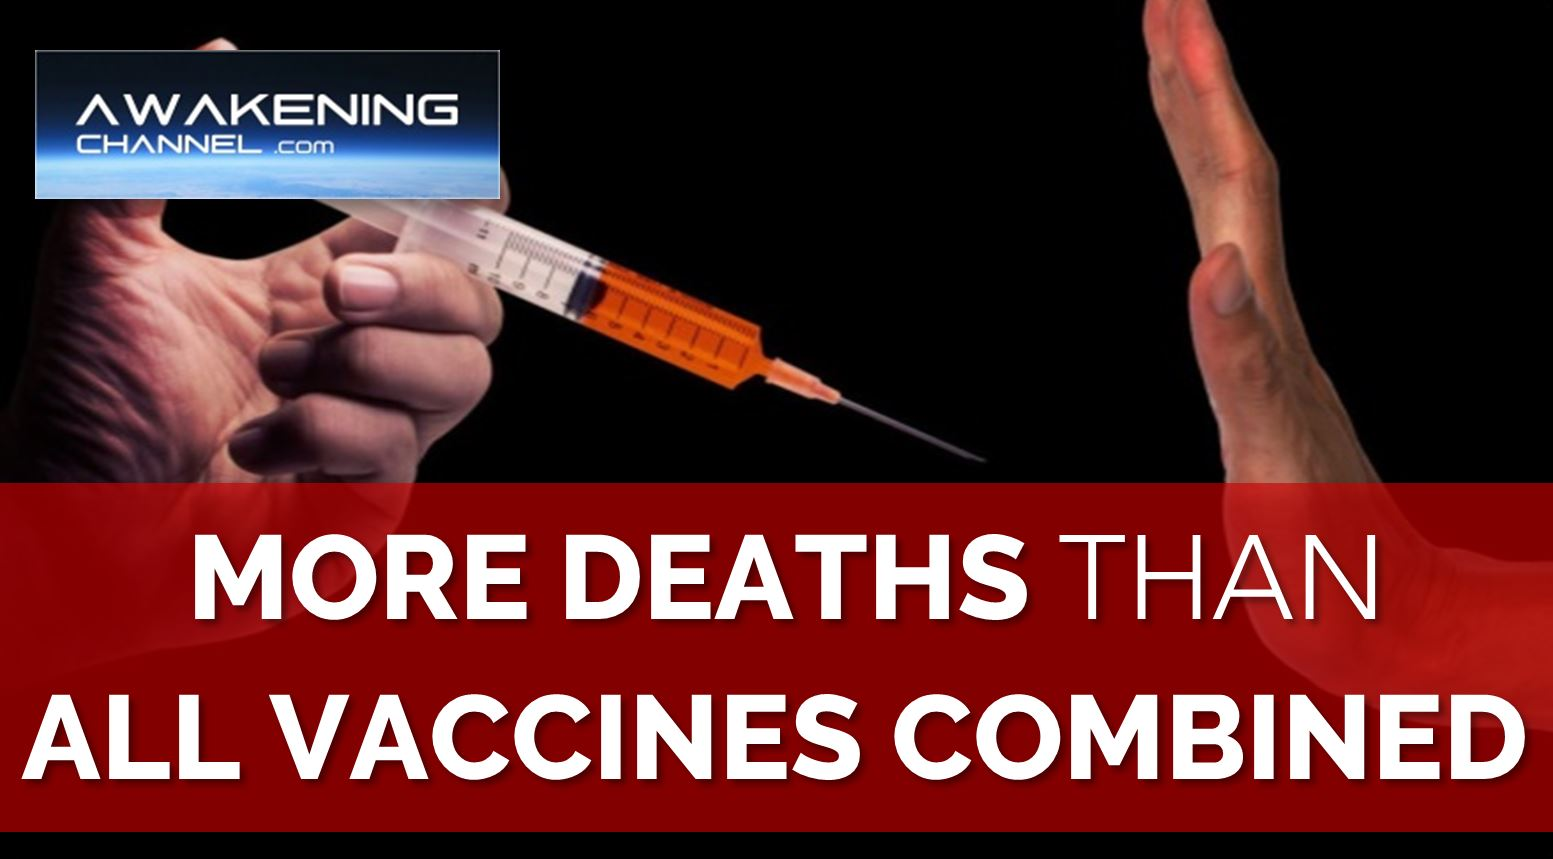 Vaccinations Must Stop Immediately. Ex-Chairman of the Royal College of Physicians in Ottawa